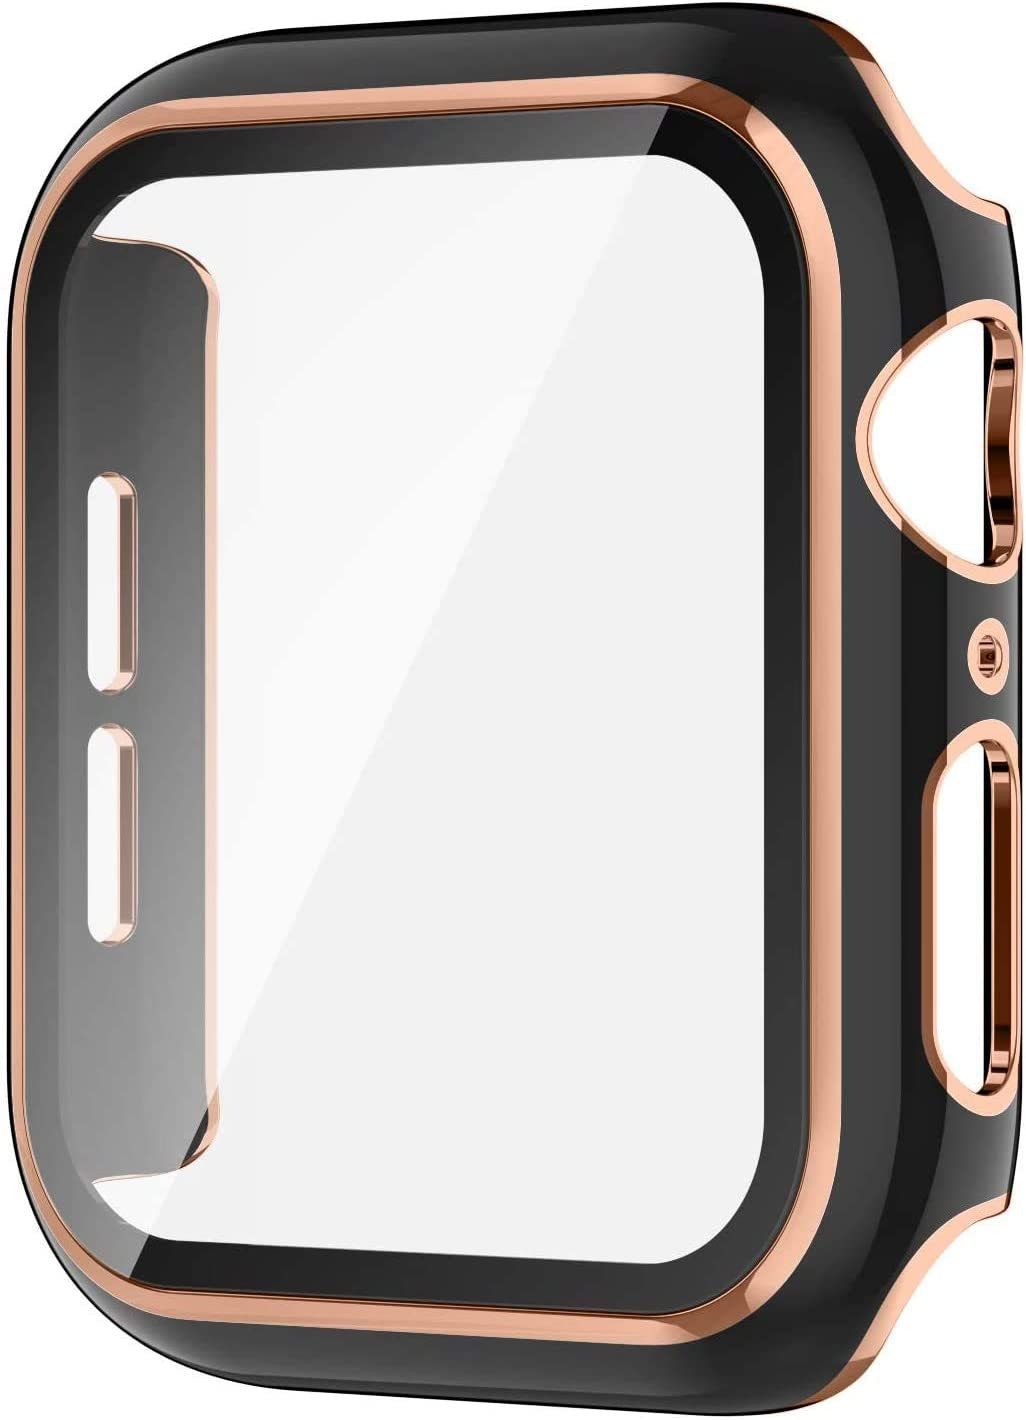 Protective Case for Apple Watch Series 6/5/4/se with HD Tempered Glass Screen Protector, Ultra-Thin Full Coverage PC Frame Cover Scratch-Resistant Bumper Guard for Women Men -- 44mm (Black)